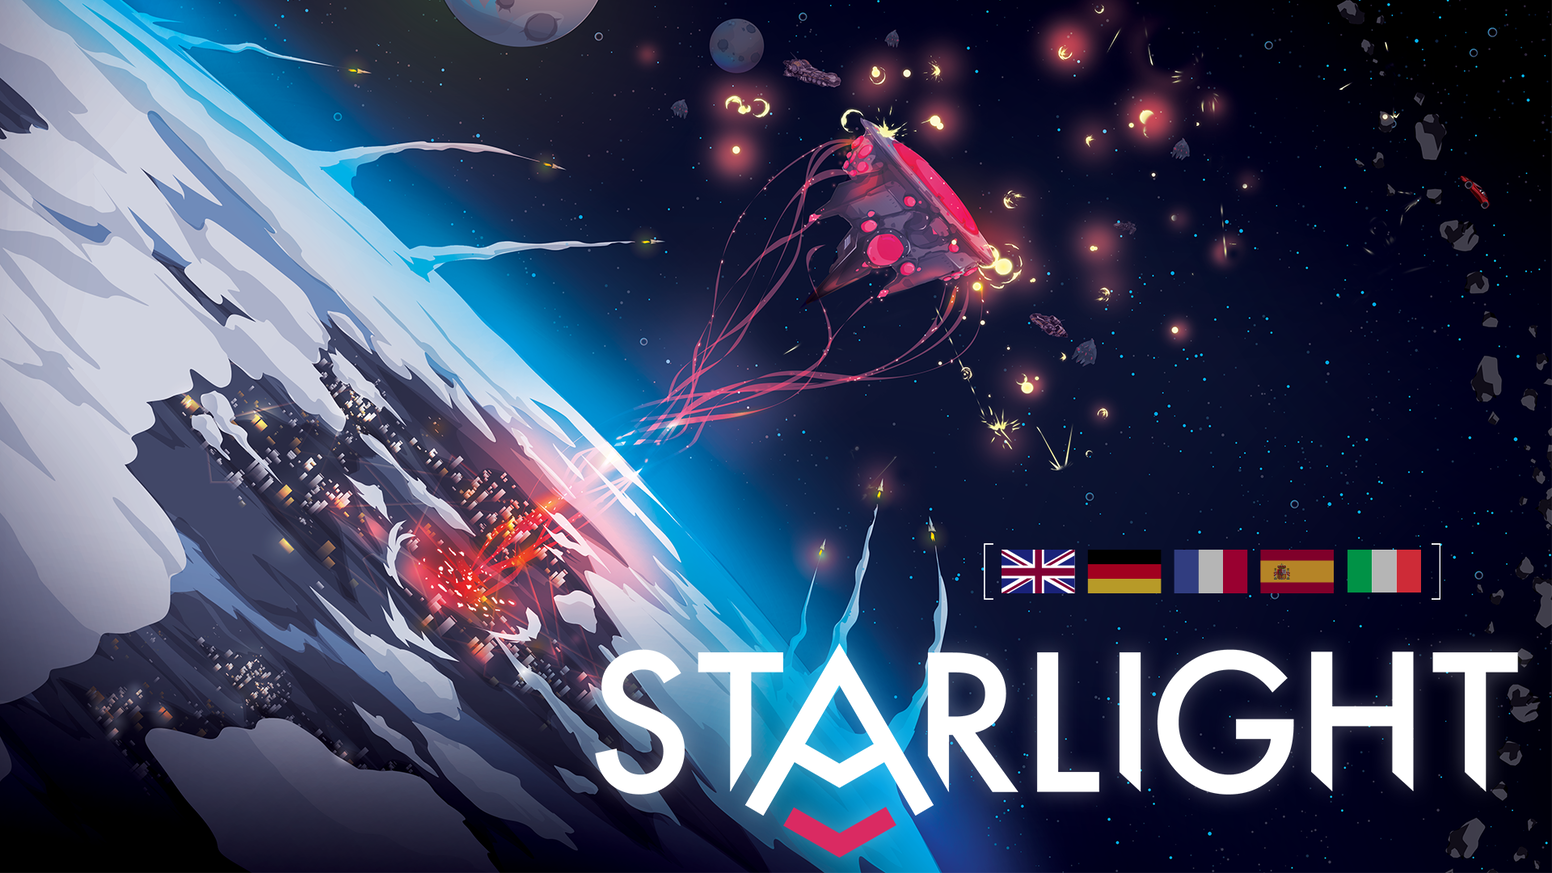 Starlight is a solo/cooperative campaign game for 1-4 players where you fight in space battles and explore a mysterious universe.